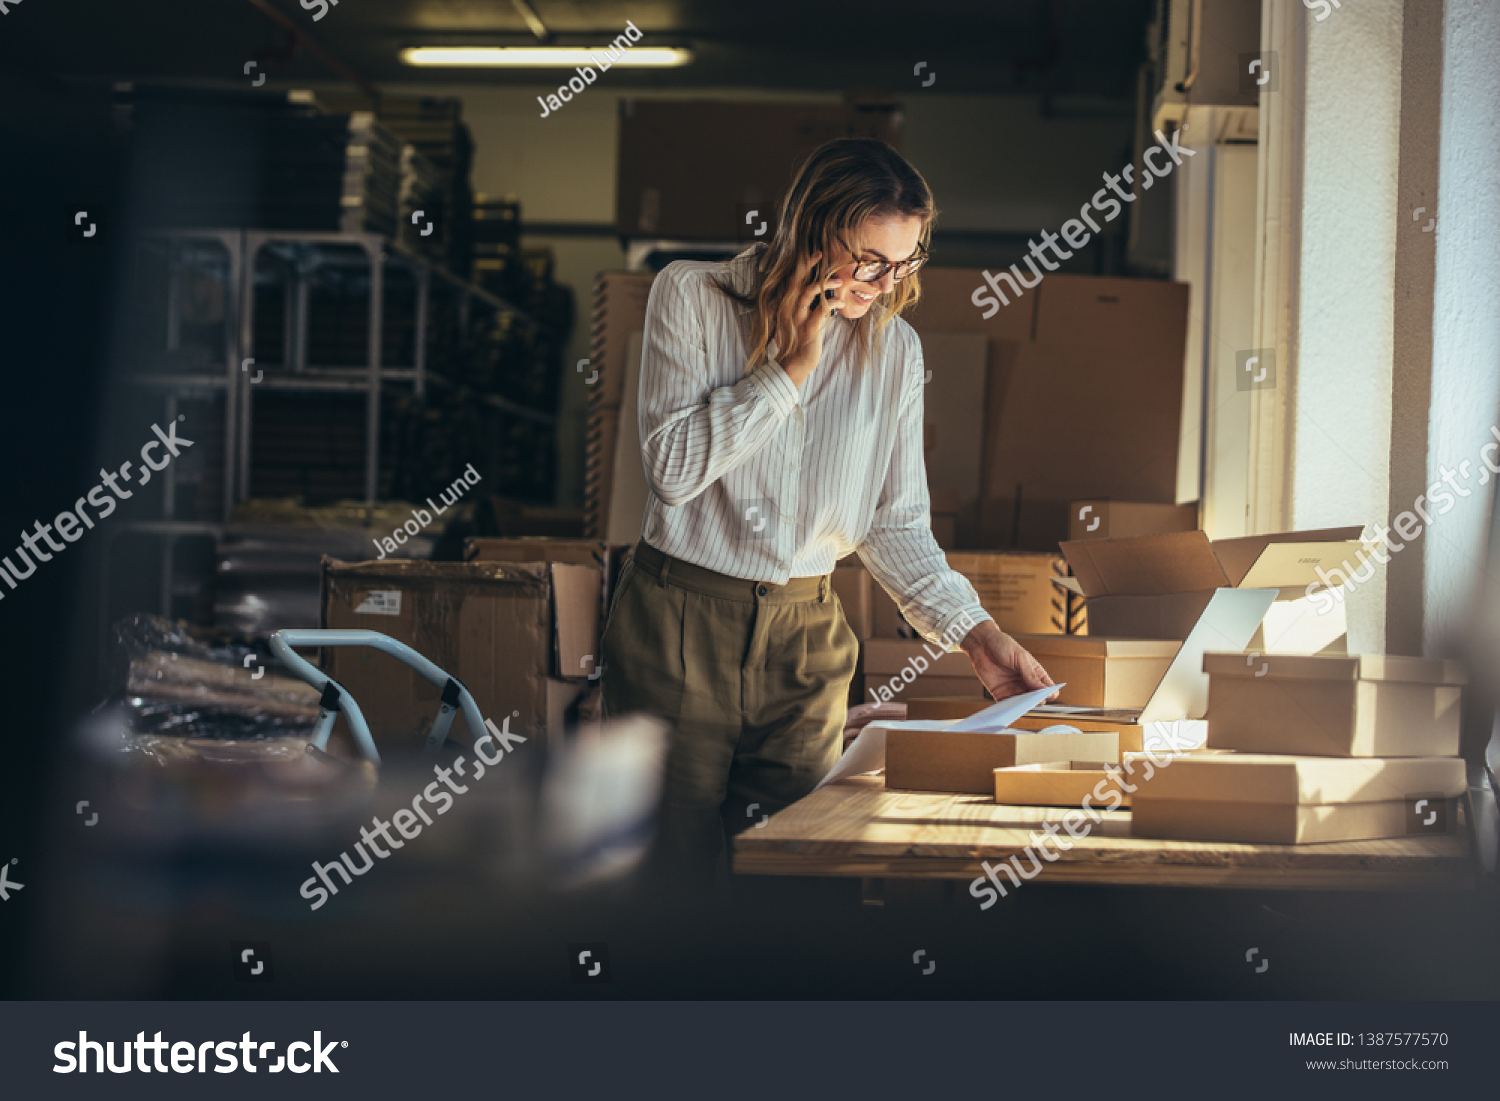 Woman online seller confirming orders from customer on the phone. E-commerce business owner looking at the papers and talking on phone in store warehouse. #1387577570